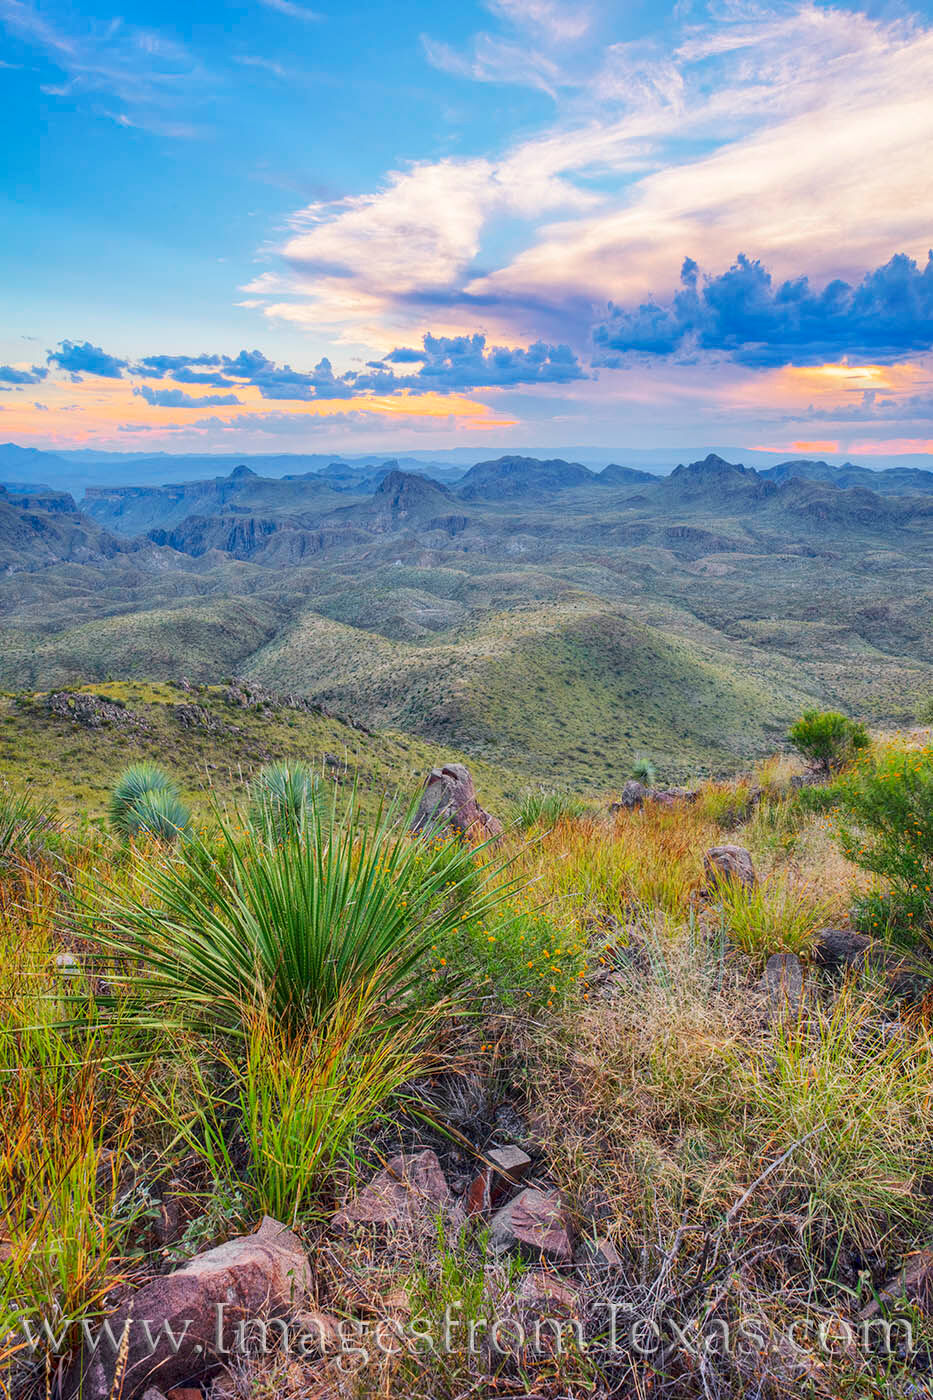 From the summit of Oso Mountain in Big Bend Ranch State Park, a the fall colors of grass paint the slopes in green and rust colors...